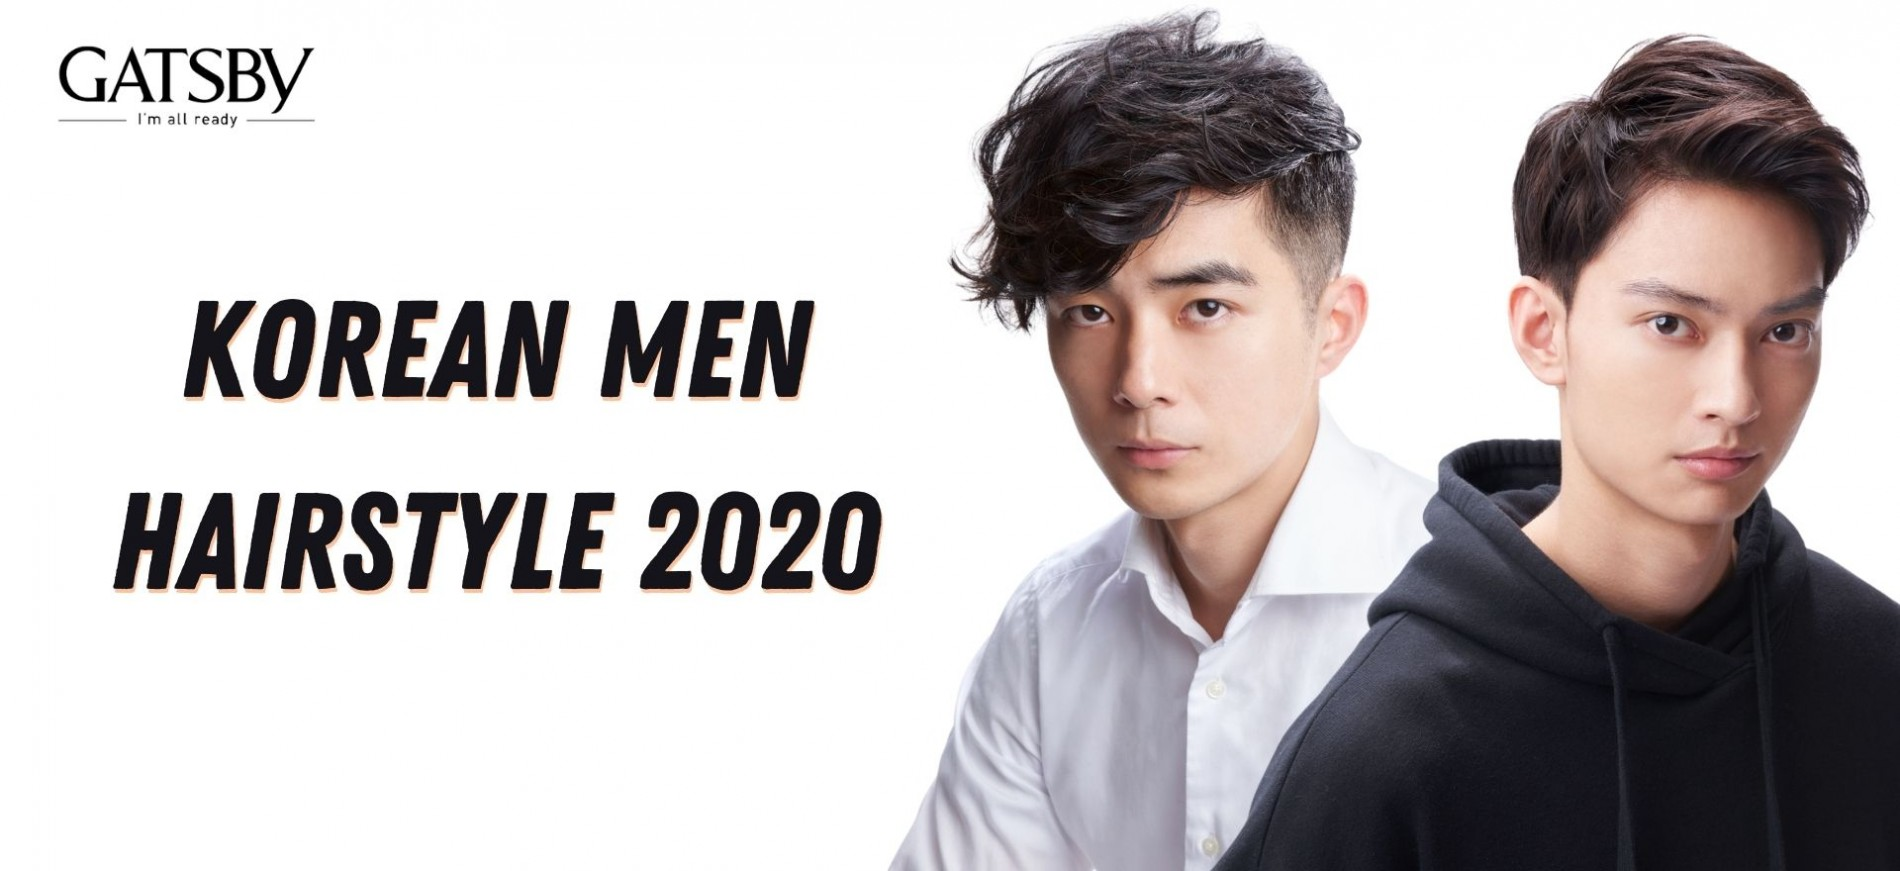 upload/assets/Korean Men Hairstyle 2020.jpg